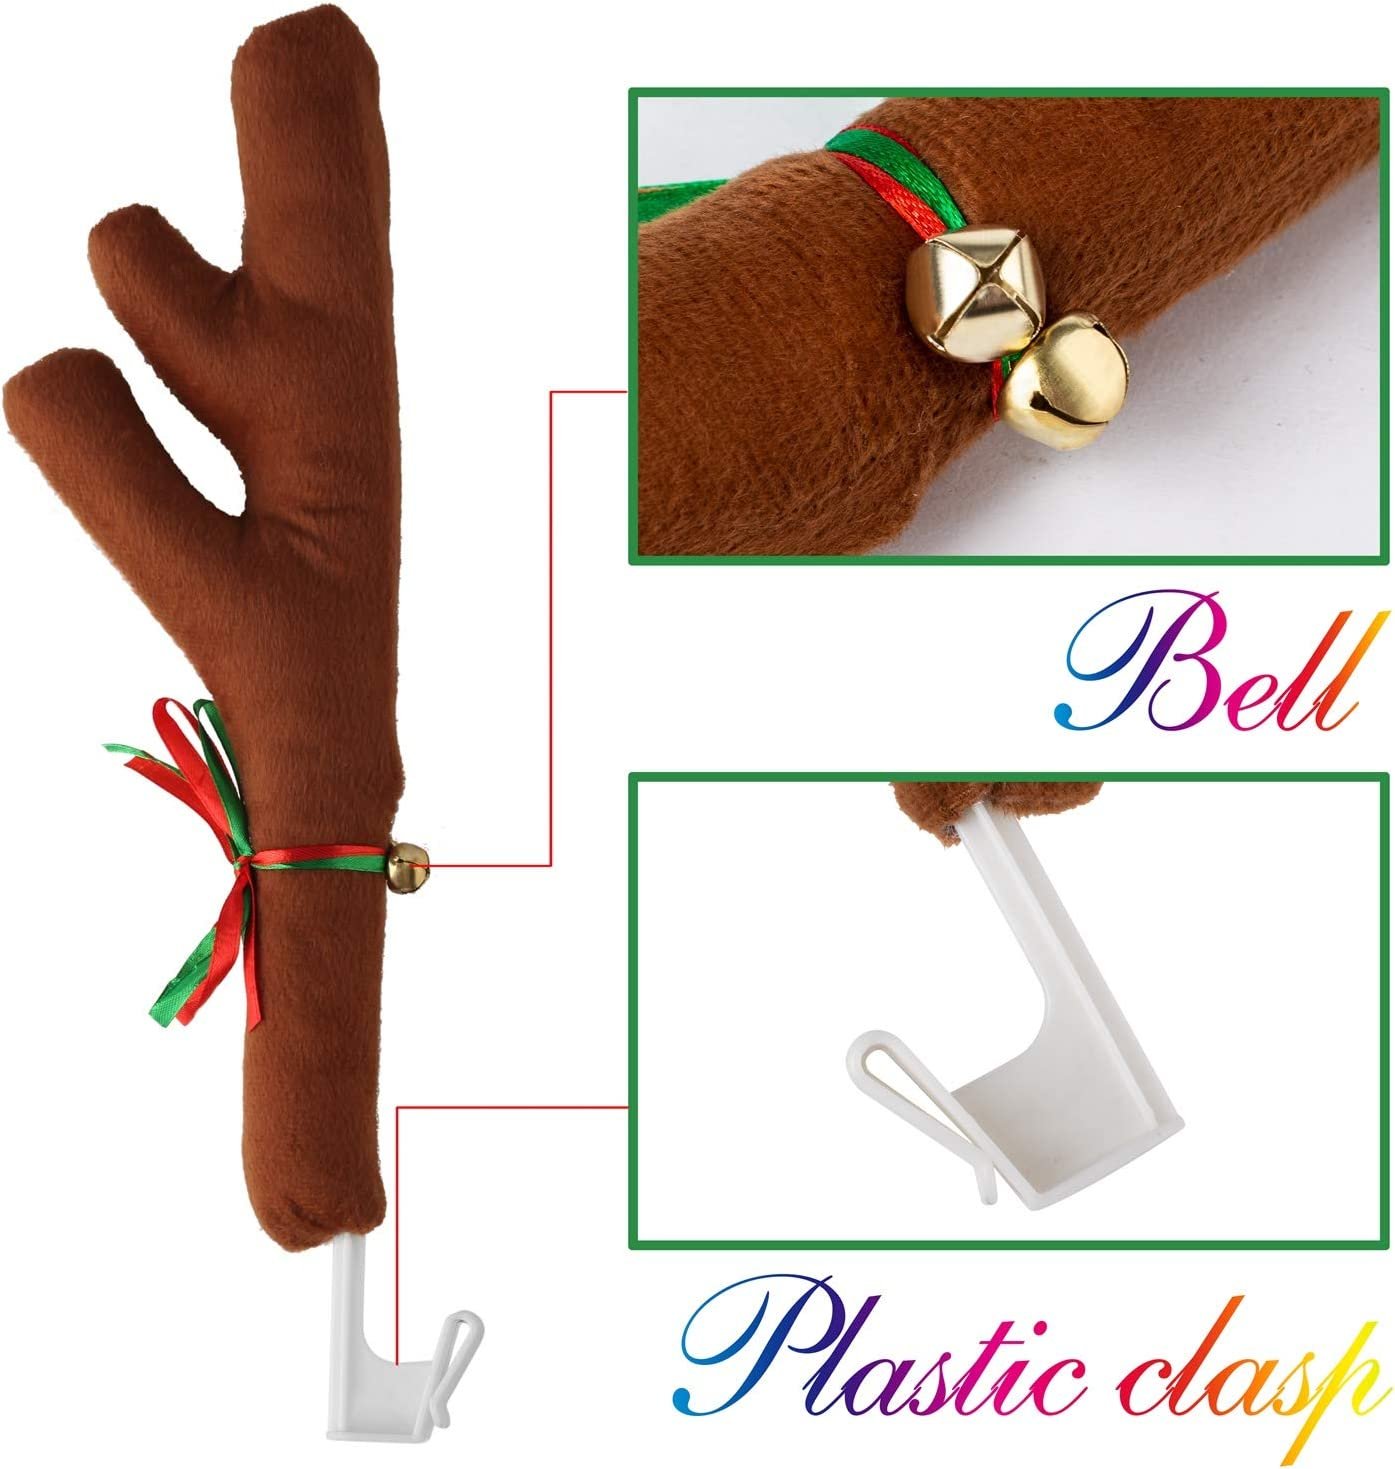 Car Decoration Christmas Antlers,Car Reindeer Antlers /& Nose Brown Car Reindeer Clothing Kit Full Set with 2 Antlers and 1 Reindeer Nose for Window Top and Front Grille